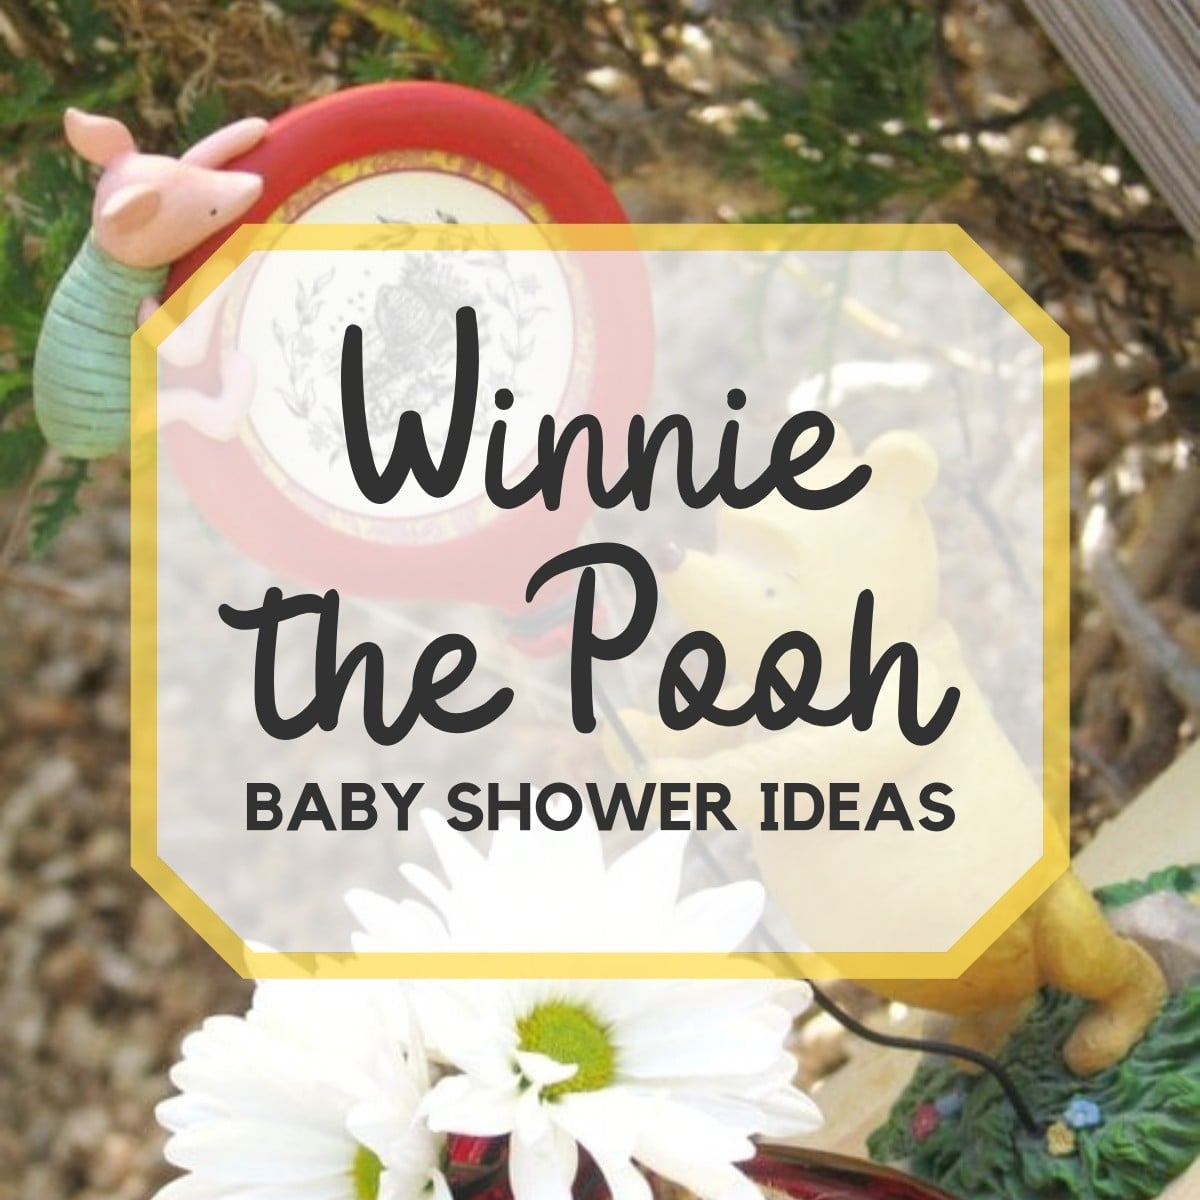 Baby Winnie The Pooh Decorations  from pinkducky.com